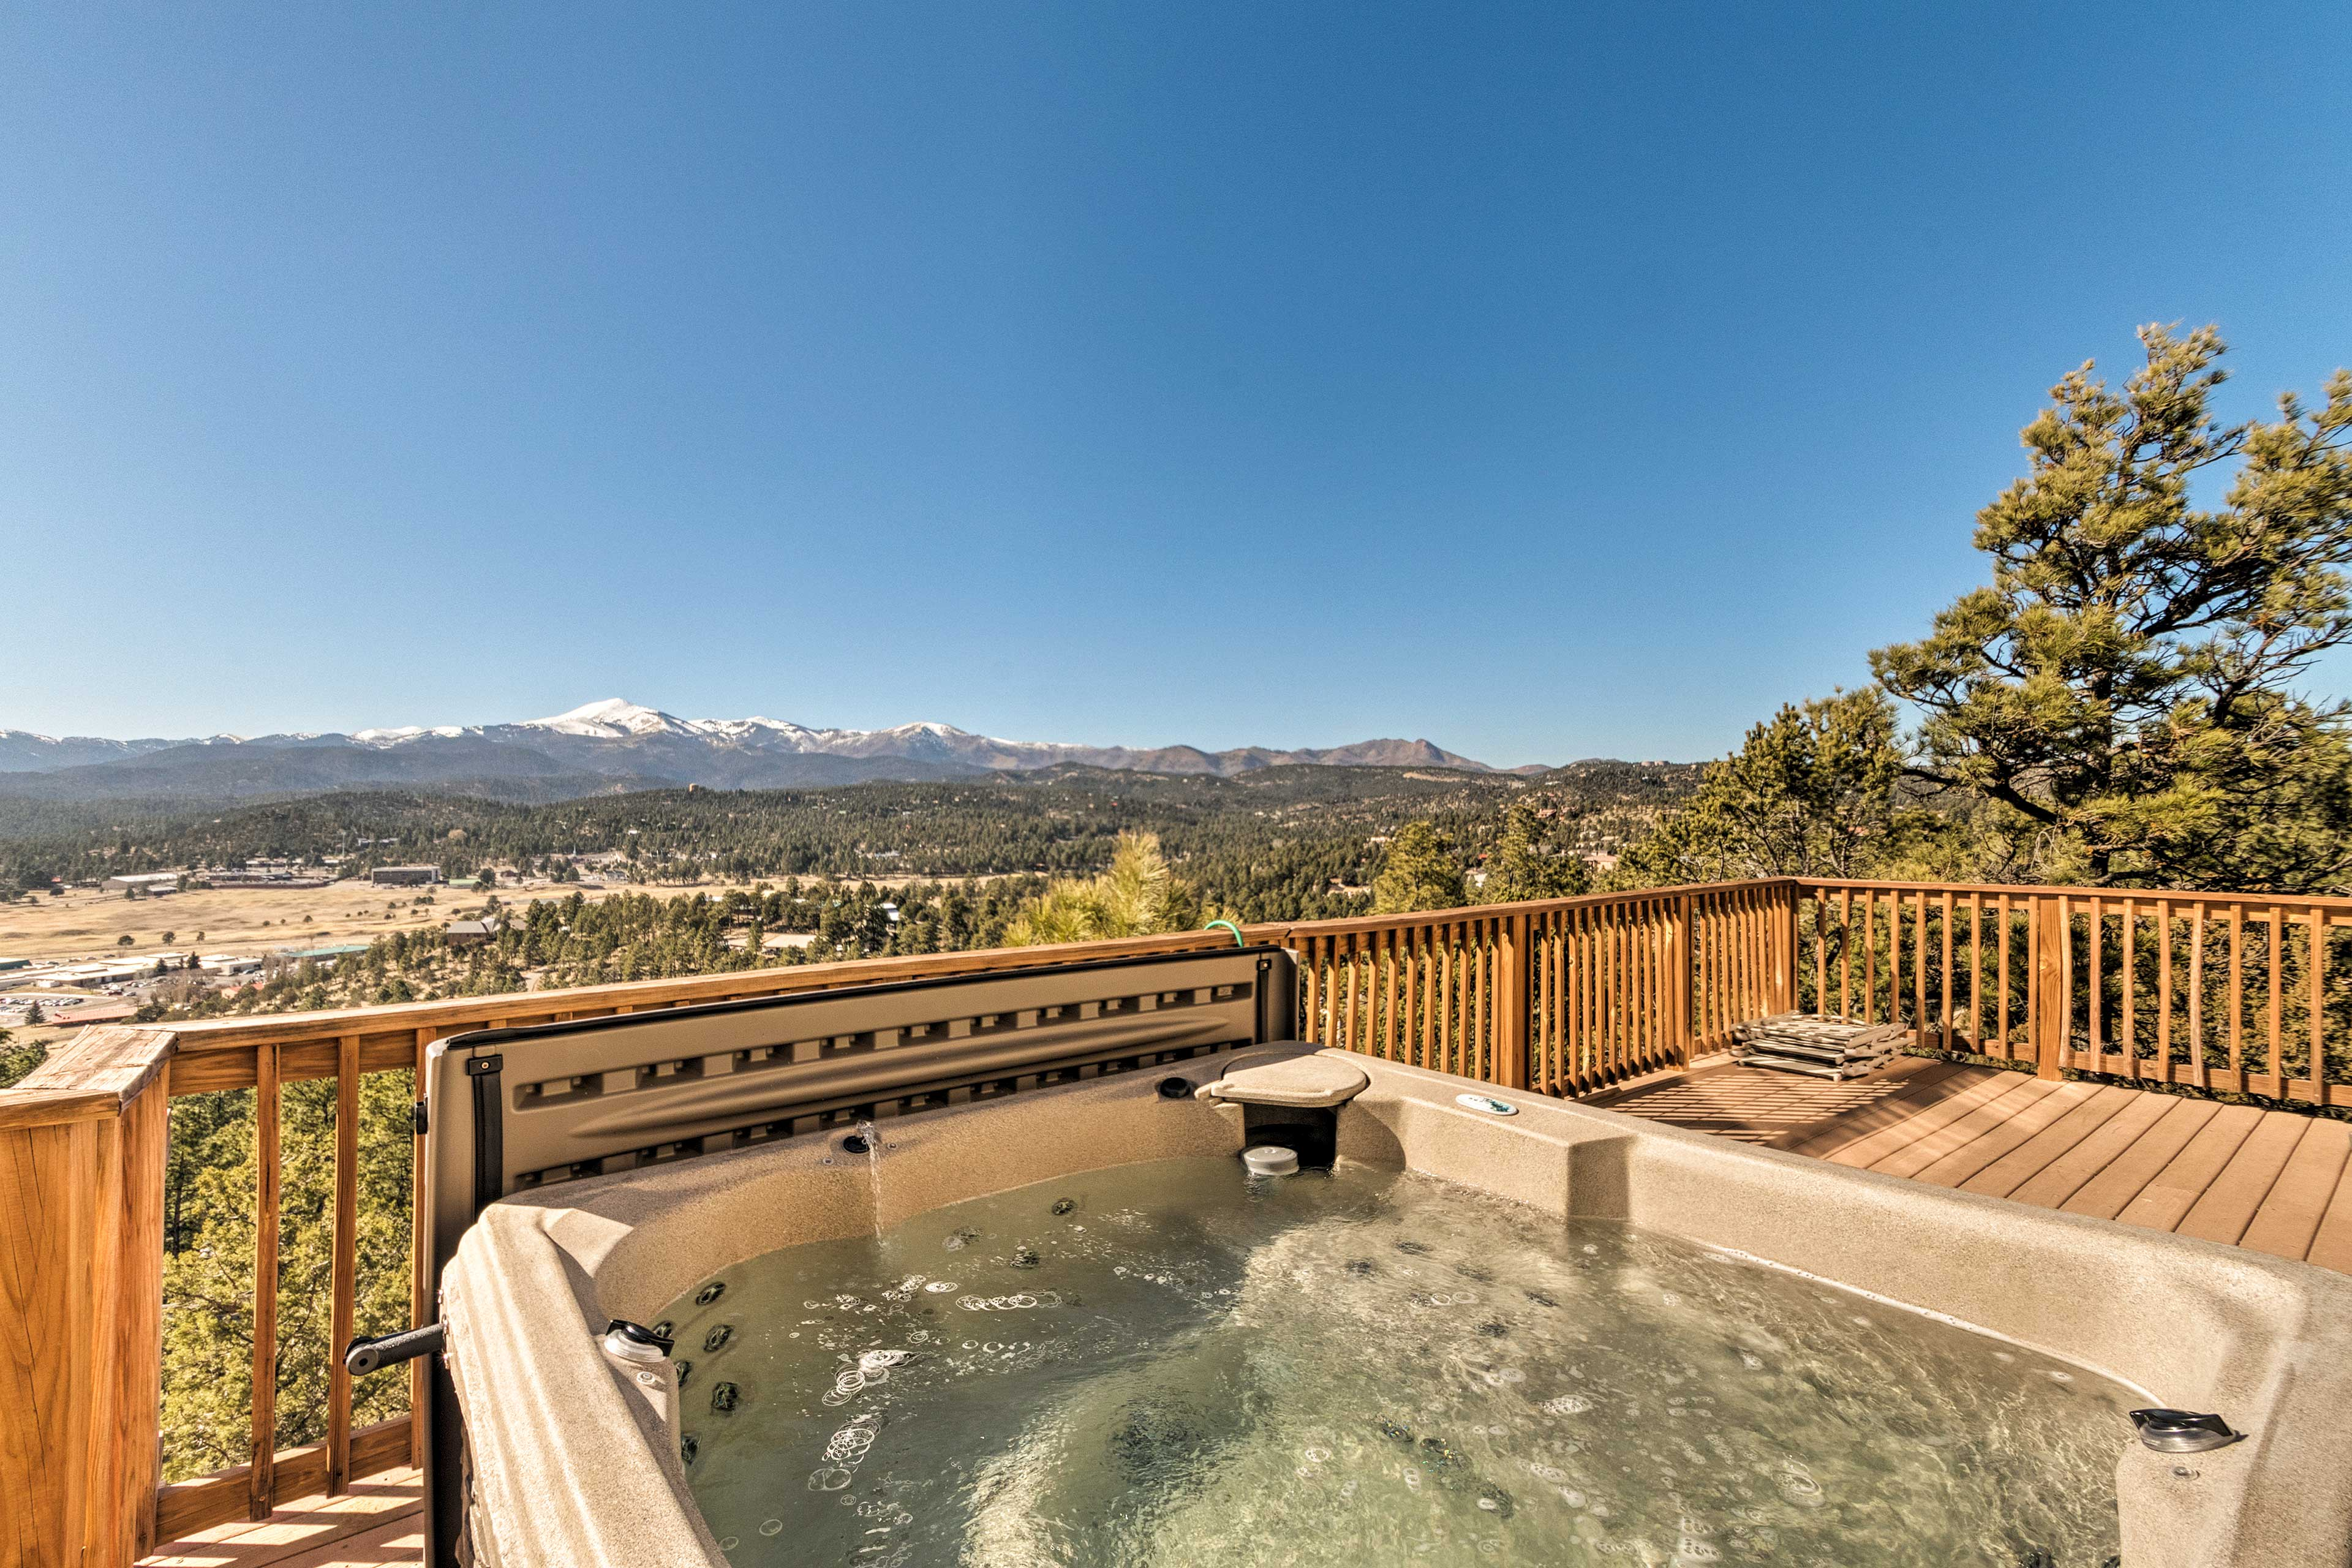 End each day with a hot tub soak under the stars.